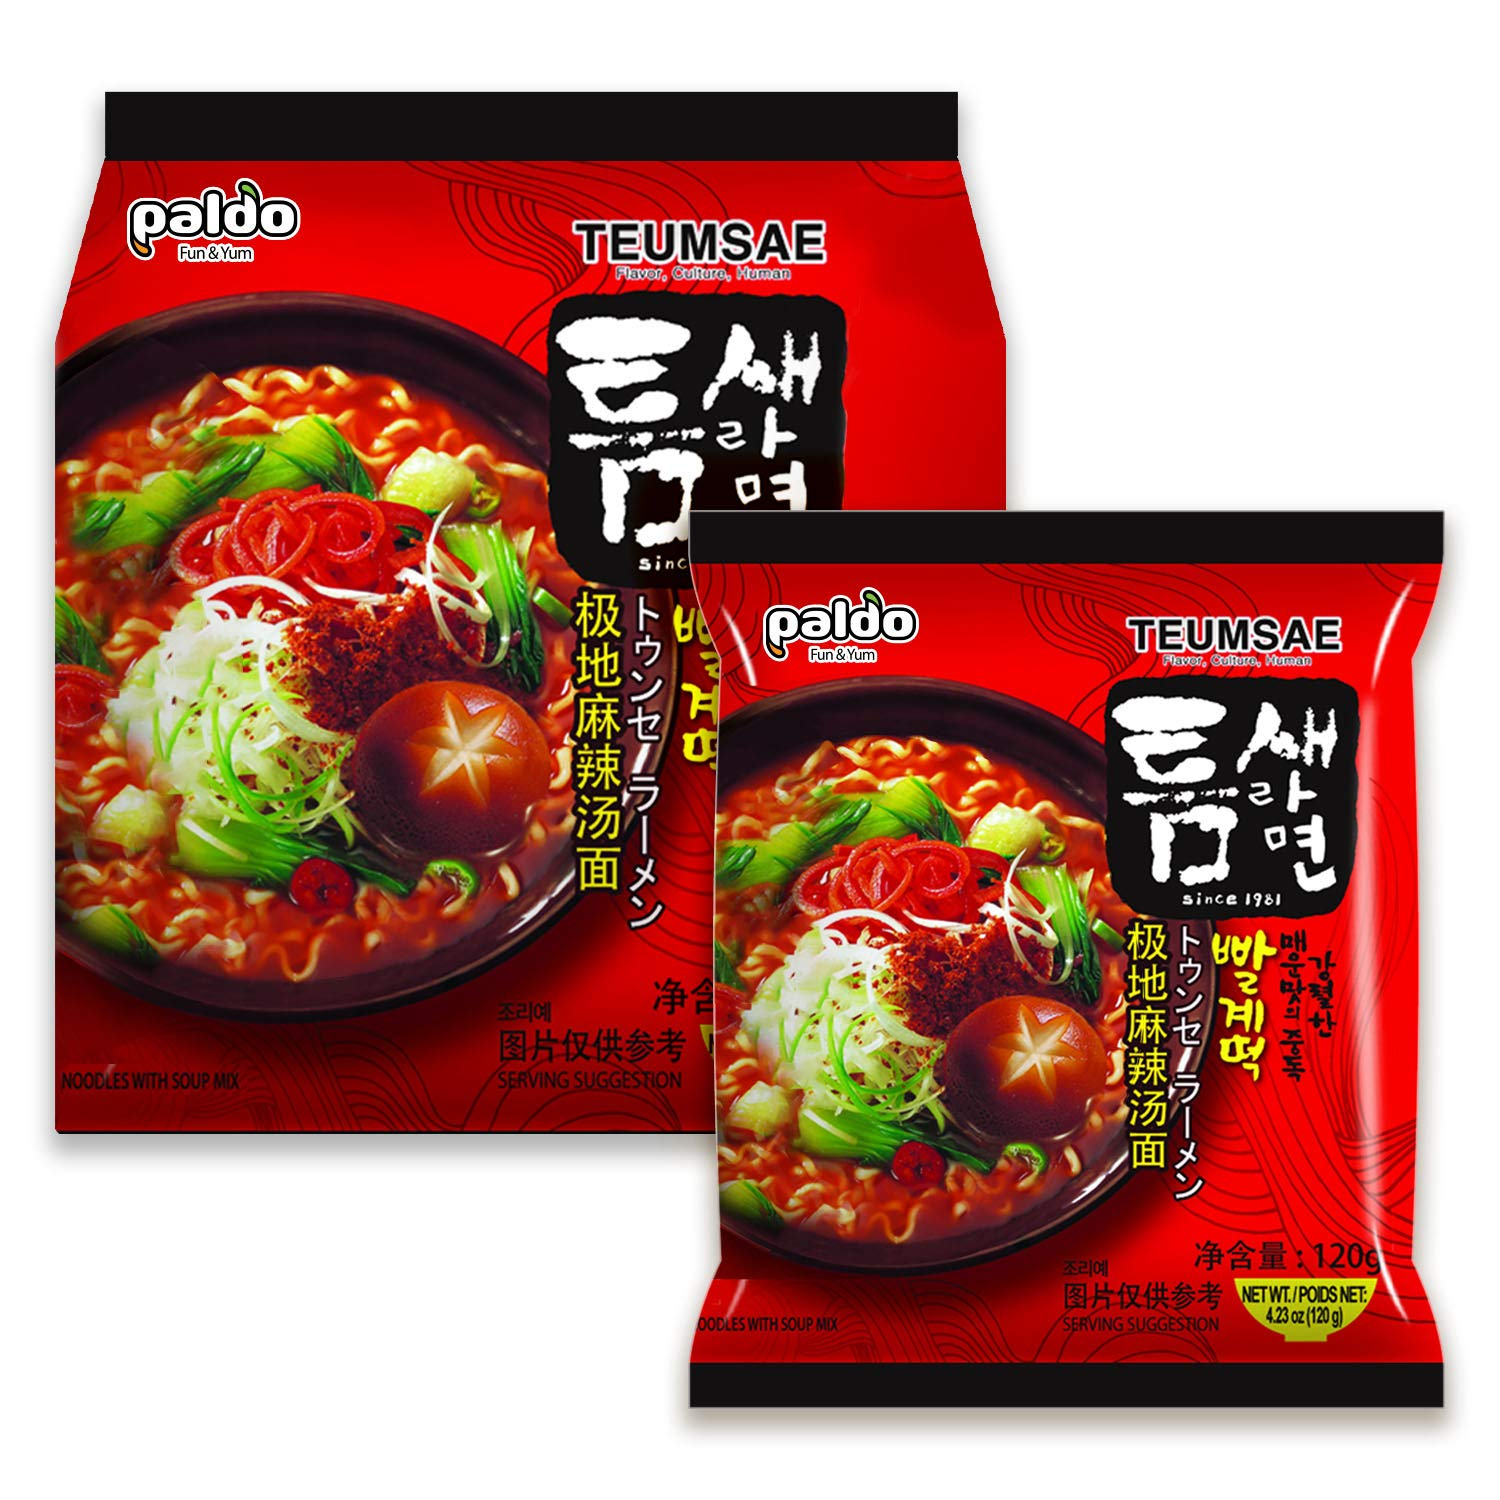 Paldo Fun & Yum Extra Hot Spicy Instant Noodles with Soup, Pack of 10, Teumsae Ramen with Spicy Broth, Best Oriental Style Korean Ramyun, Spicy Ramen Challenge, K-Food, 틈새라면 빨계떡 120g x 10